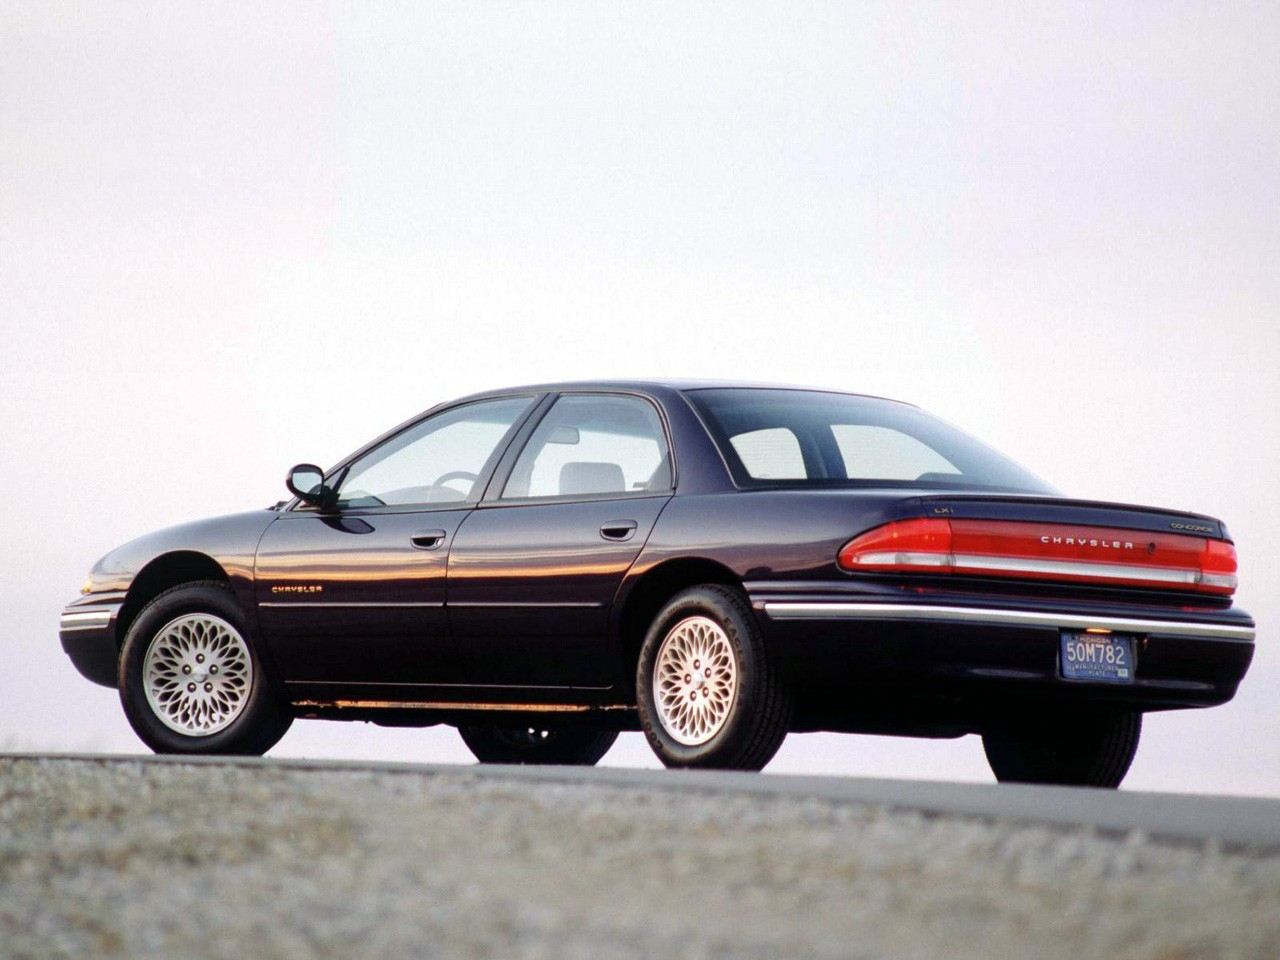 Chrysler Concord: specifications and description of the American executive saloon